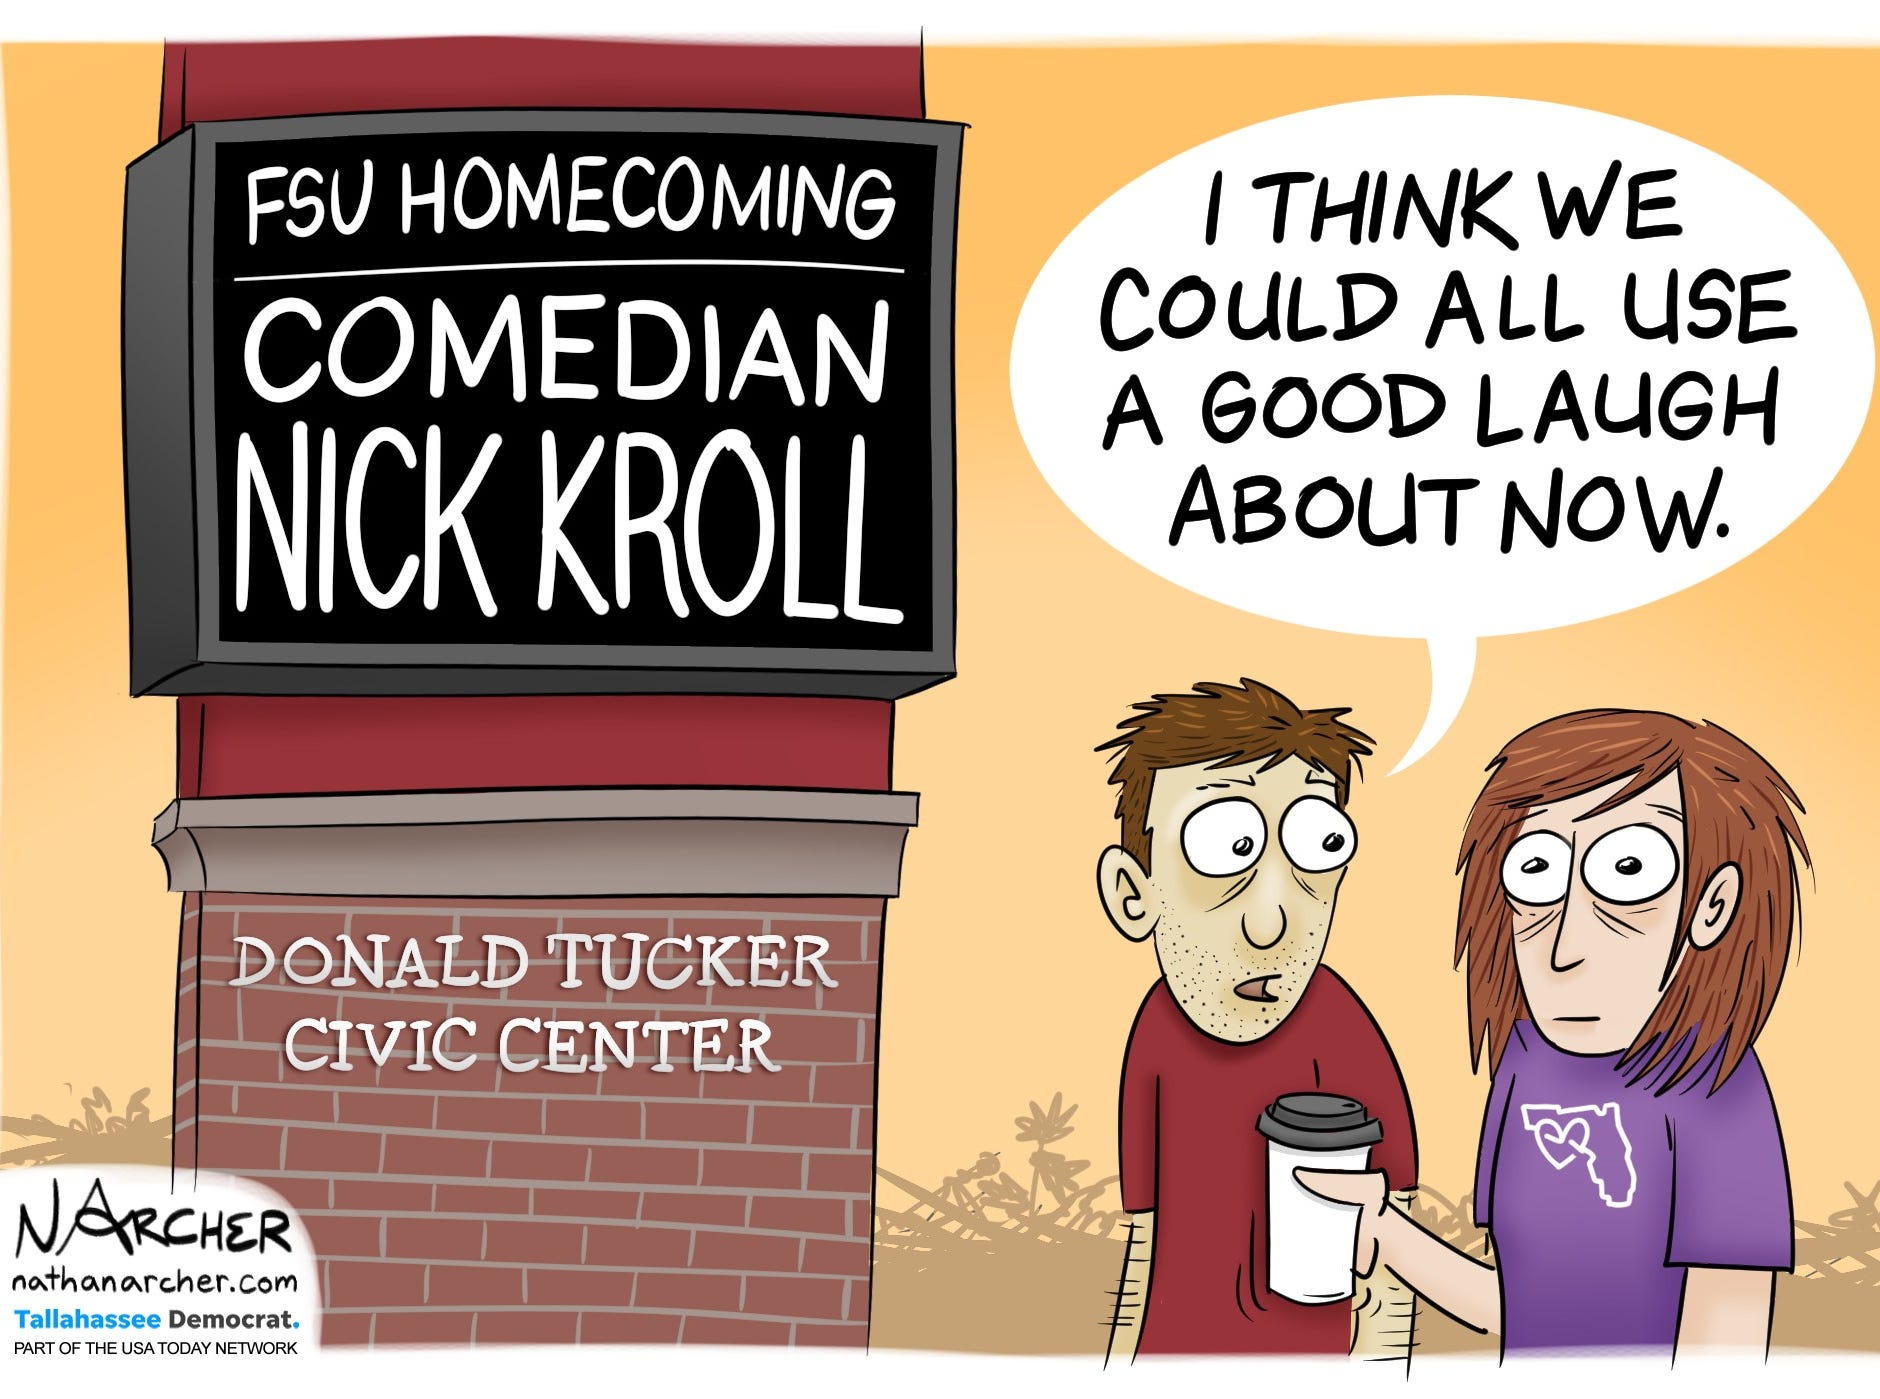 FSU Homecoming